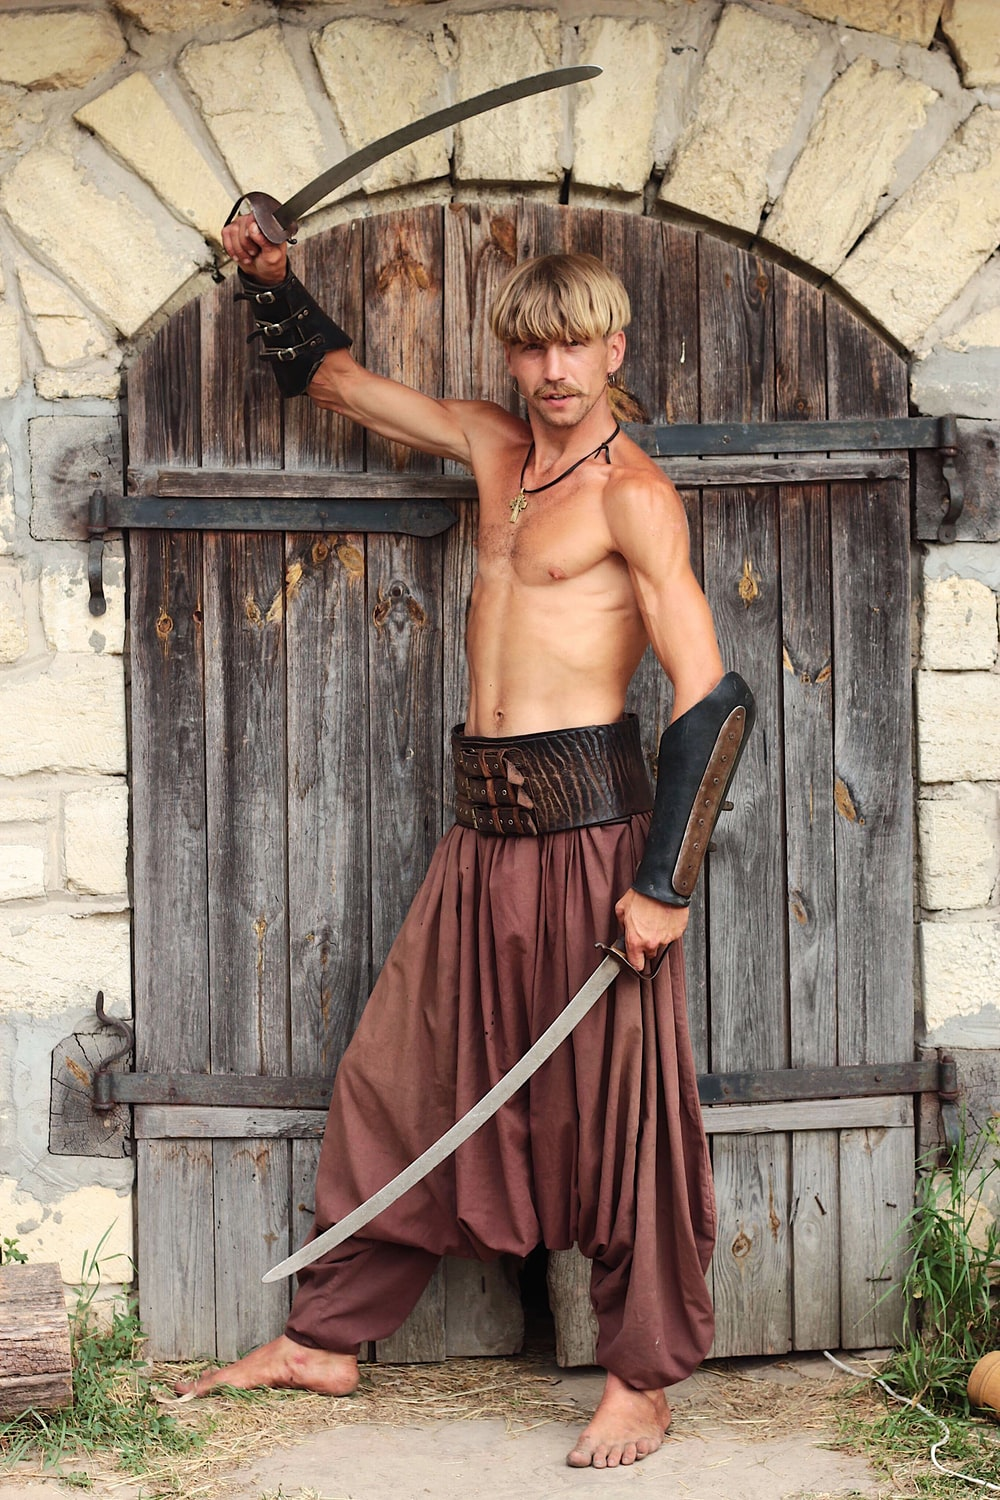 man holding two swords while standing in front of brown gate